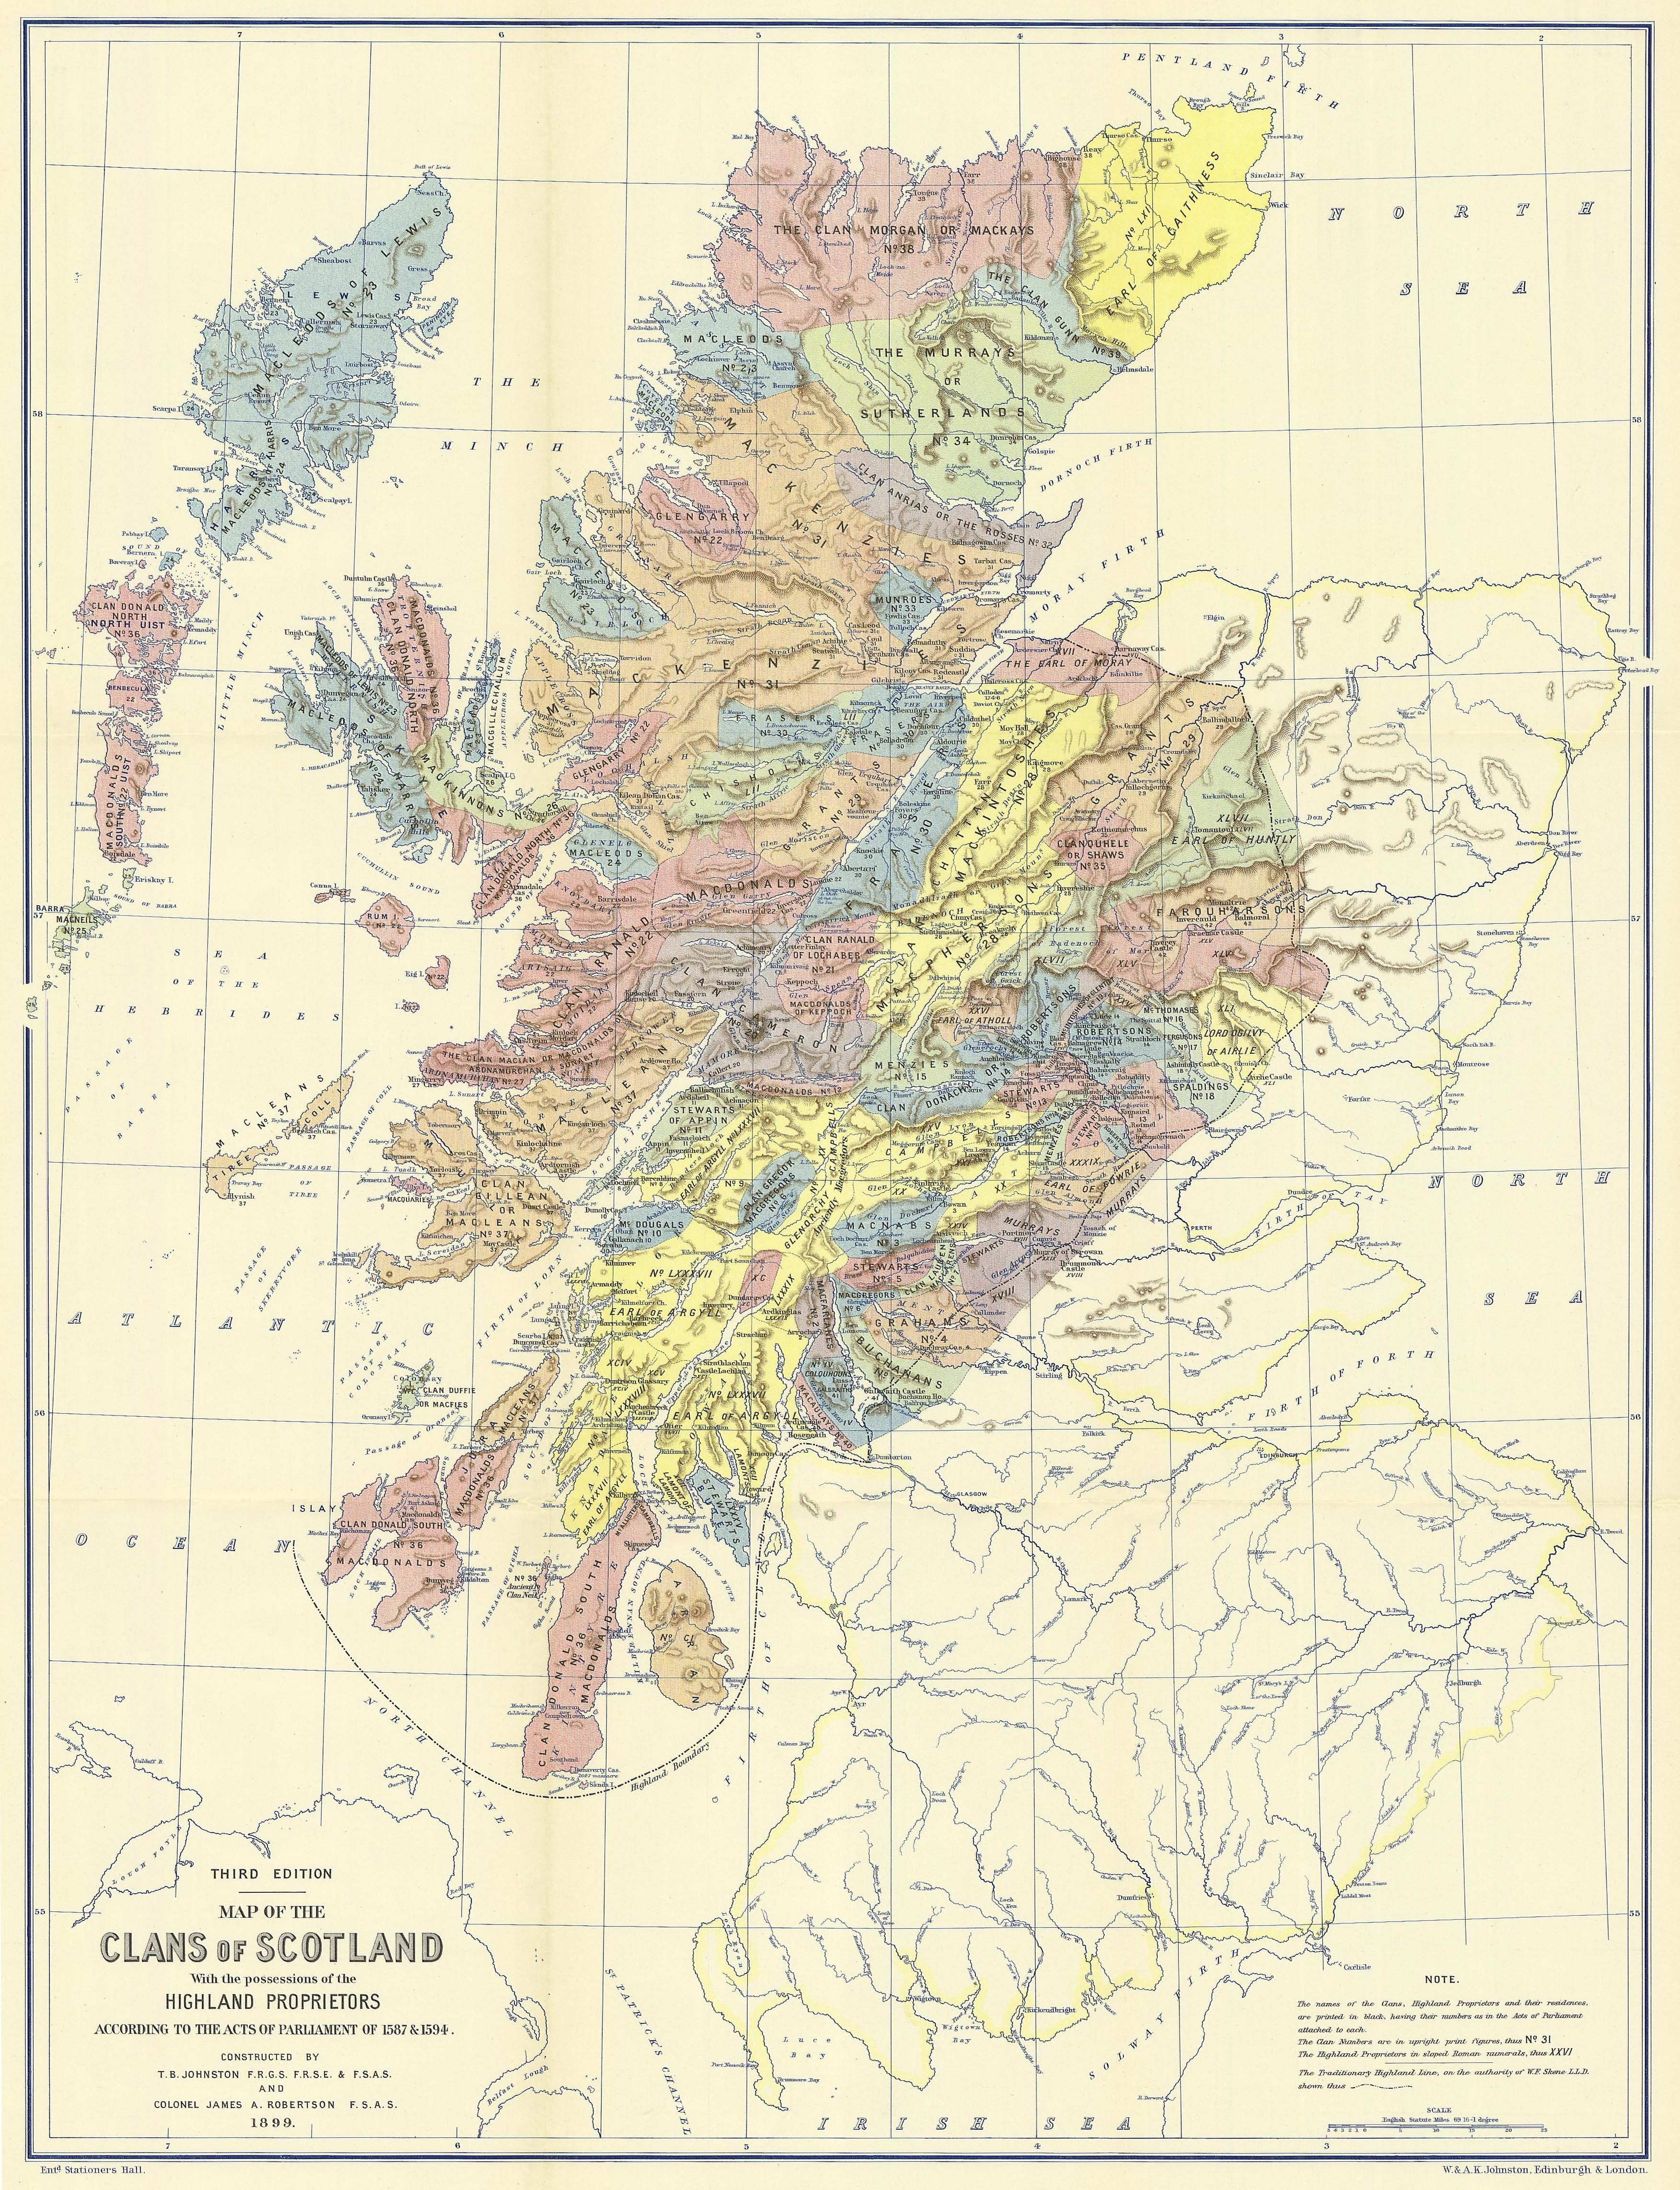 File:Map of the clans of Scotland (1899, third edition).